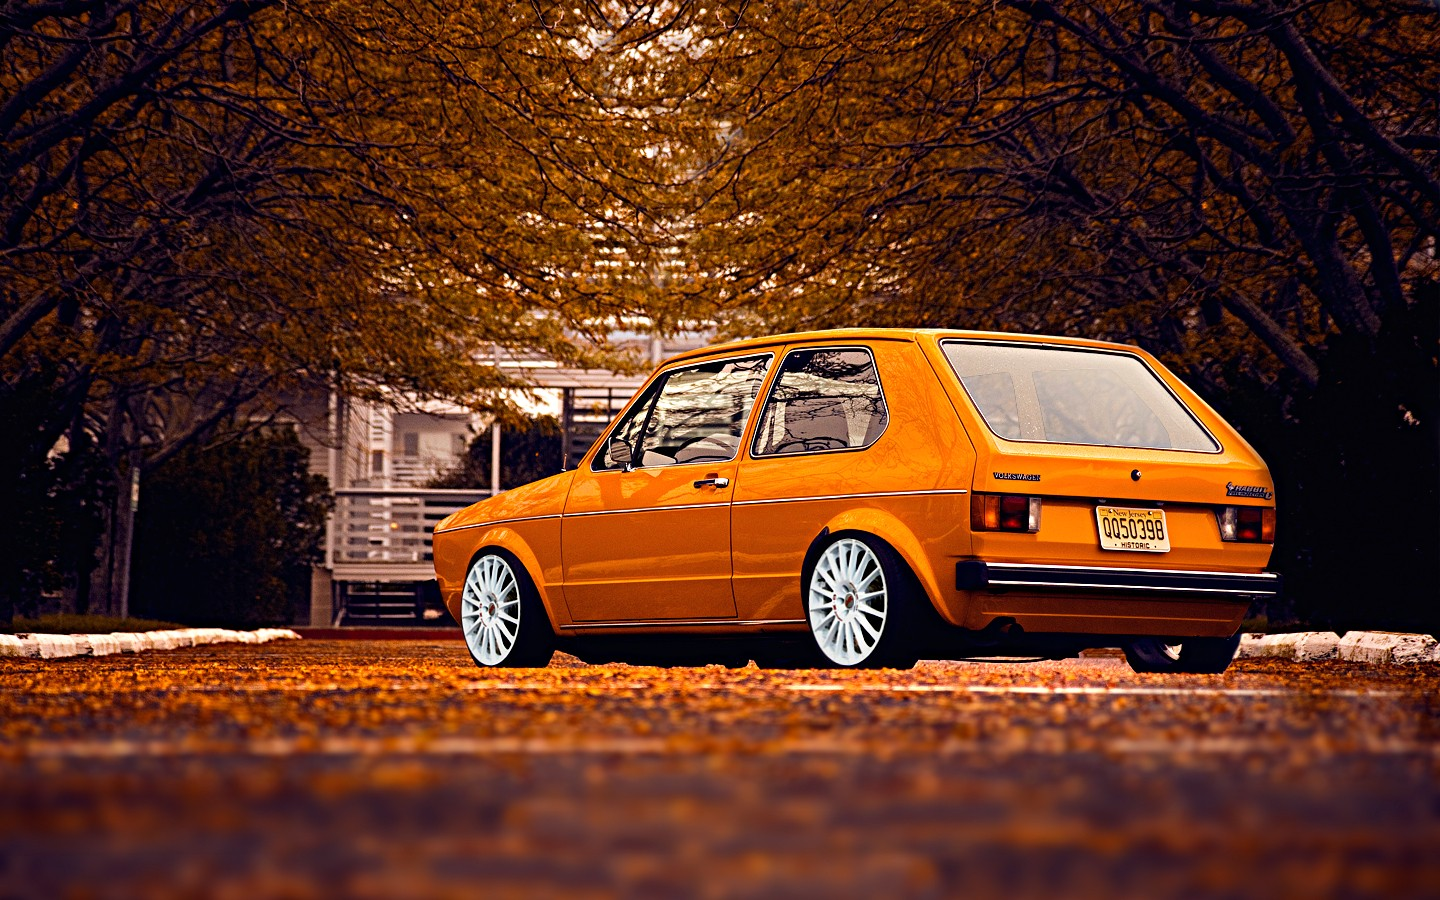 VW Golf Wallpaper - WallpaperSafari